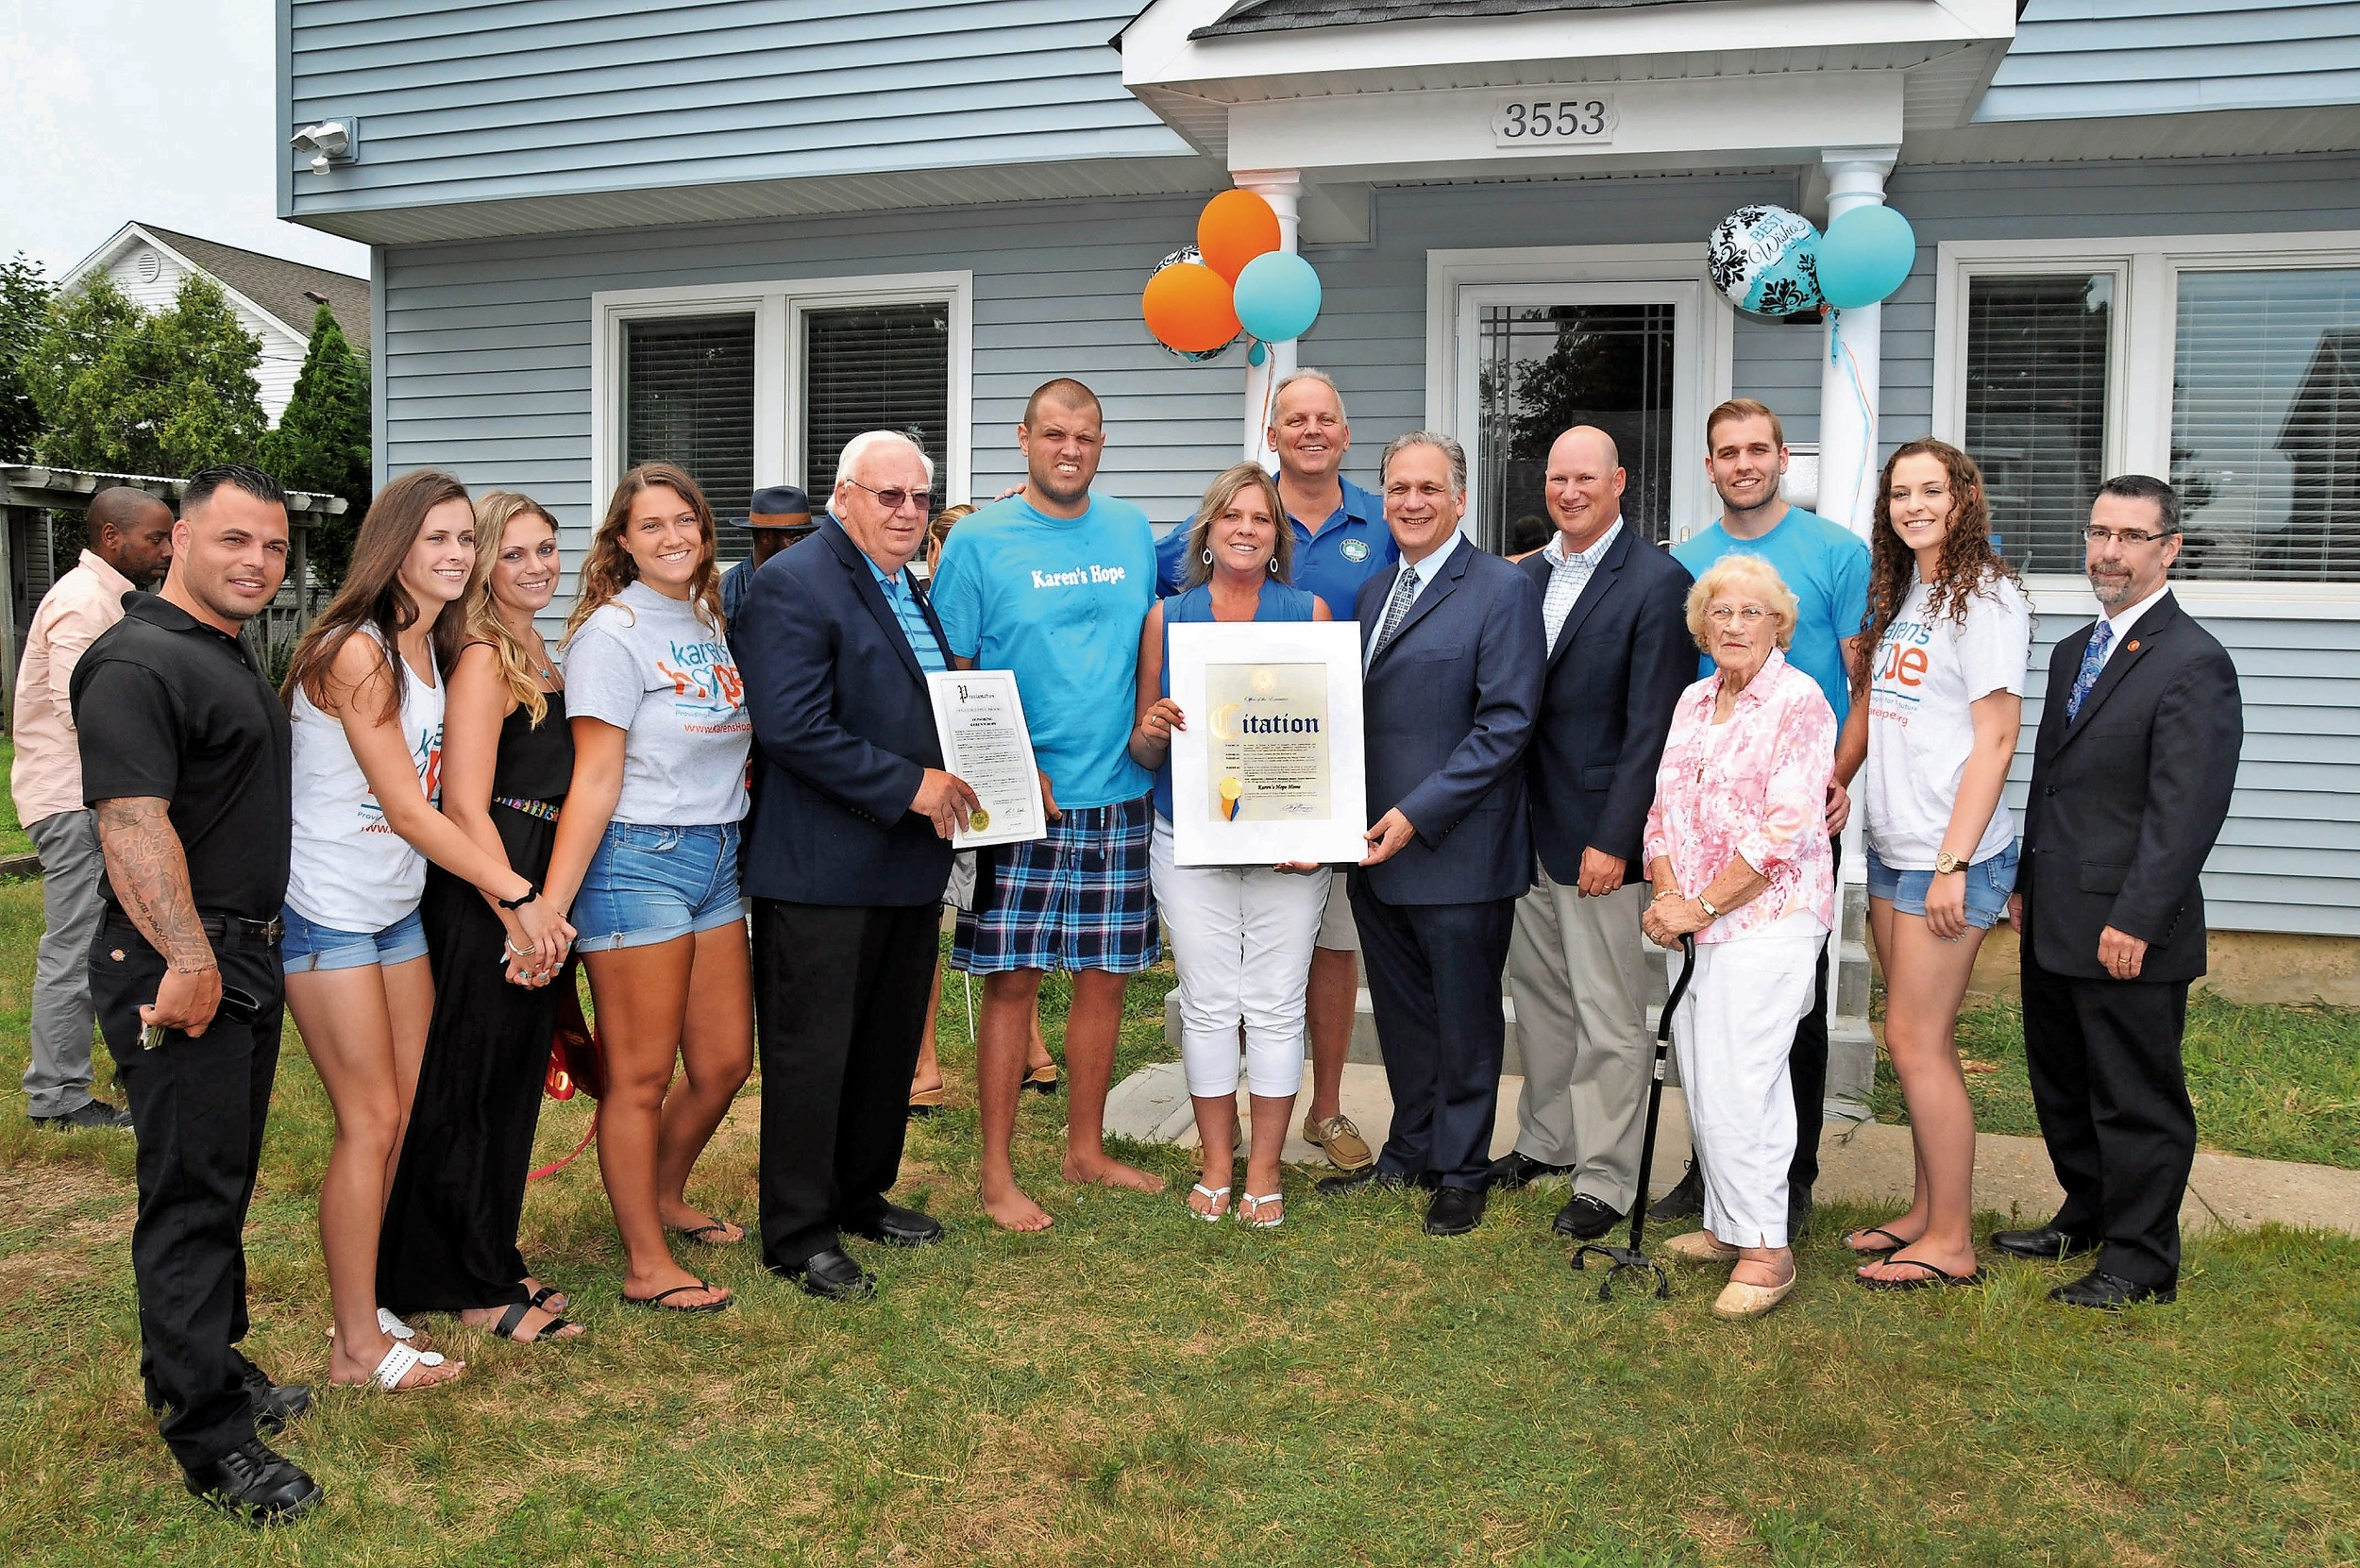 Karen's Hope founders, volunteers, State Sen. John Brooks and County Executive Ed Mangano celebrated the renovation of a house for two disabled adults on July 28.